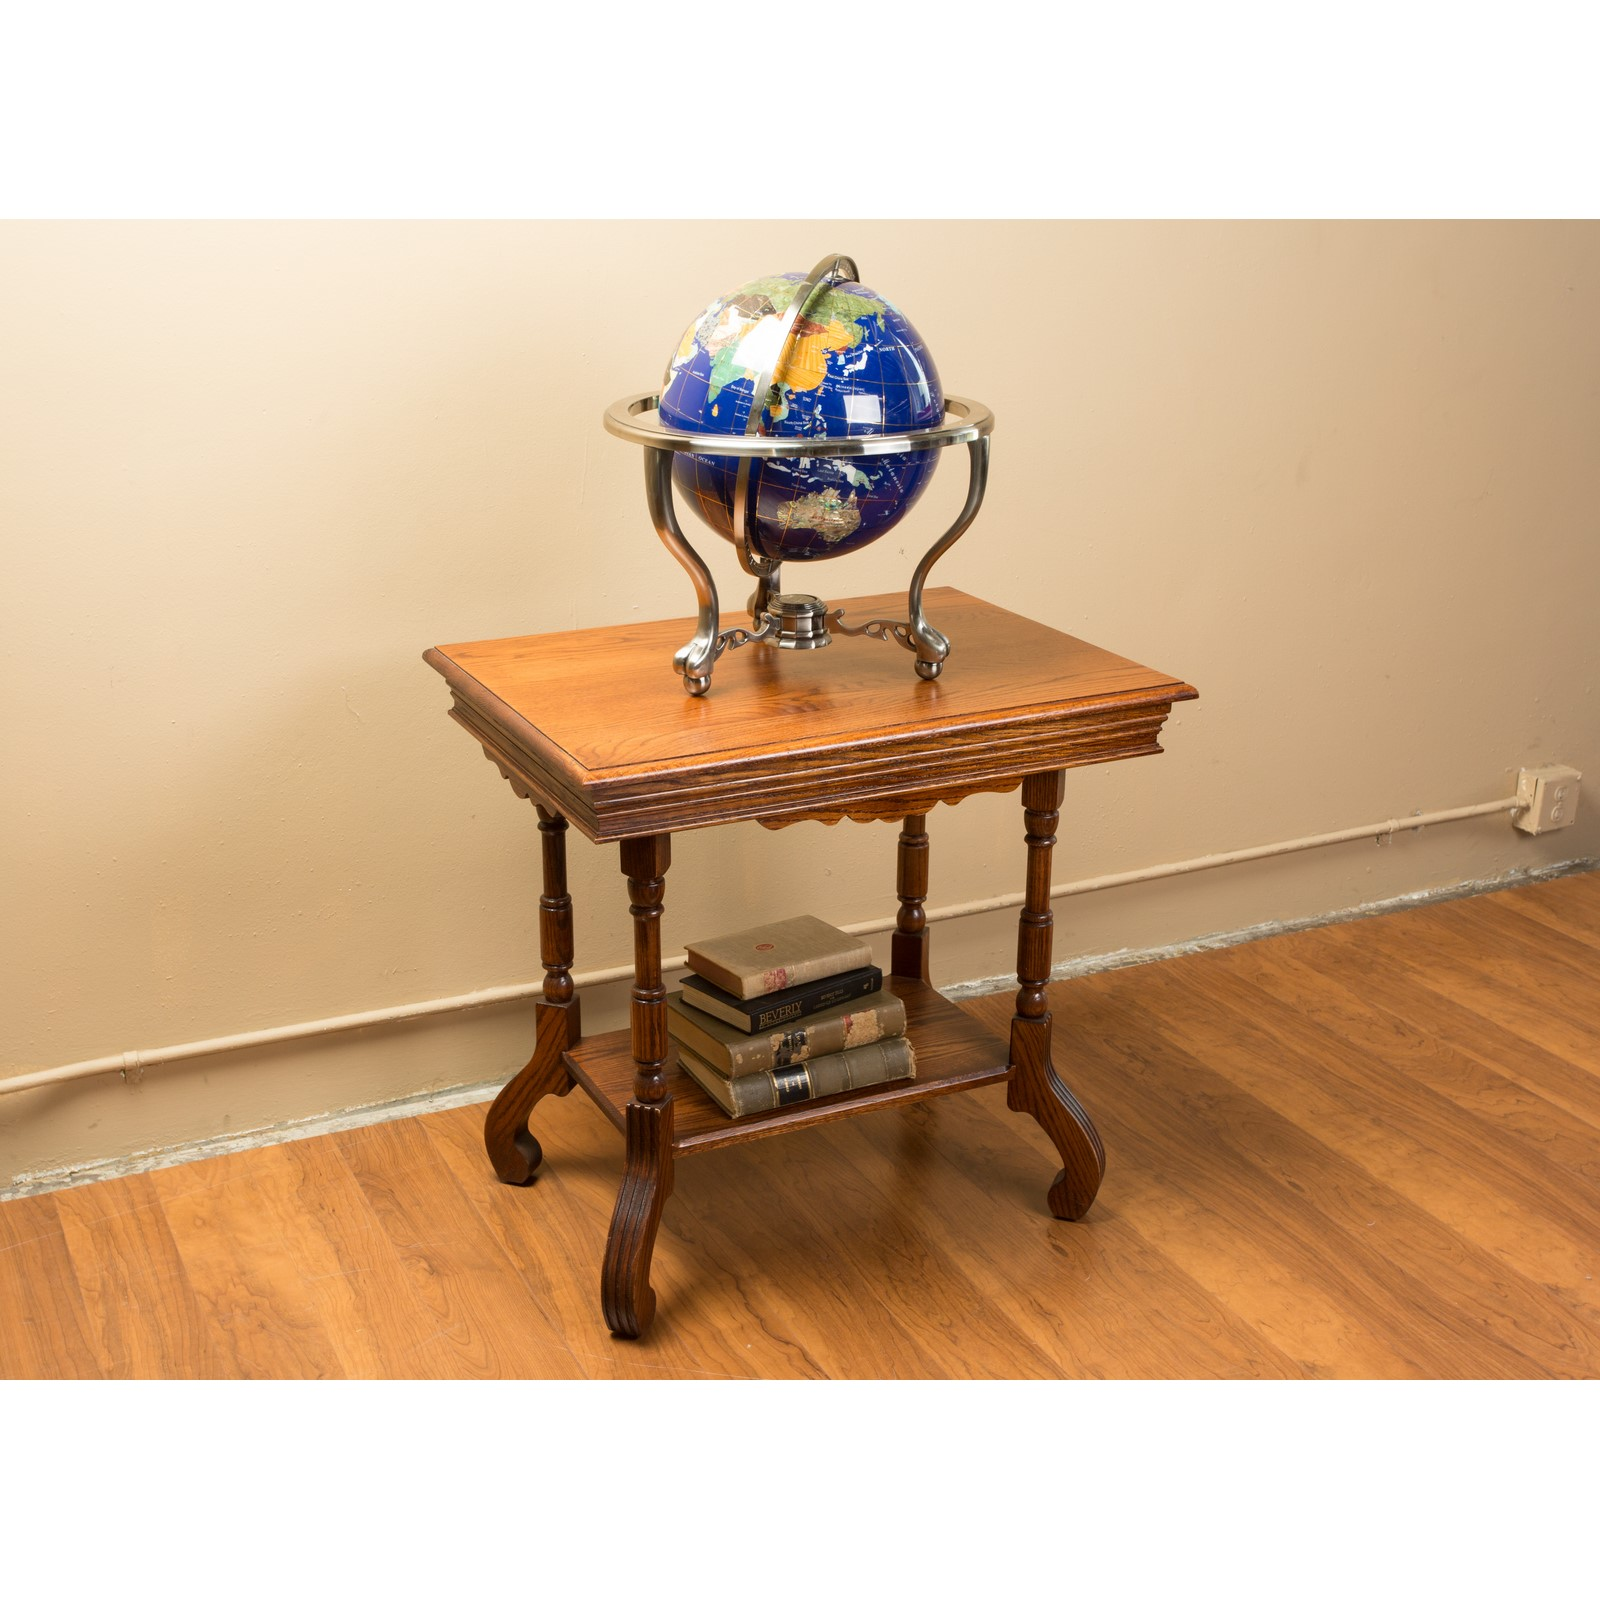 Creative wood design legacy end table stewart roth furniture for Creative design table